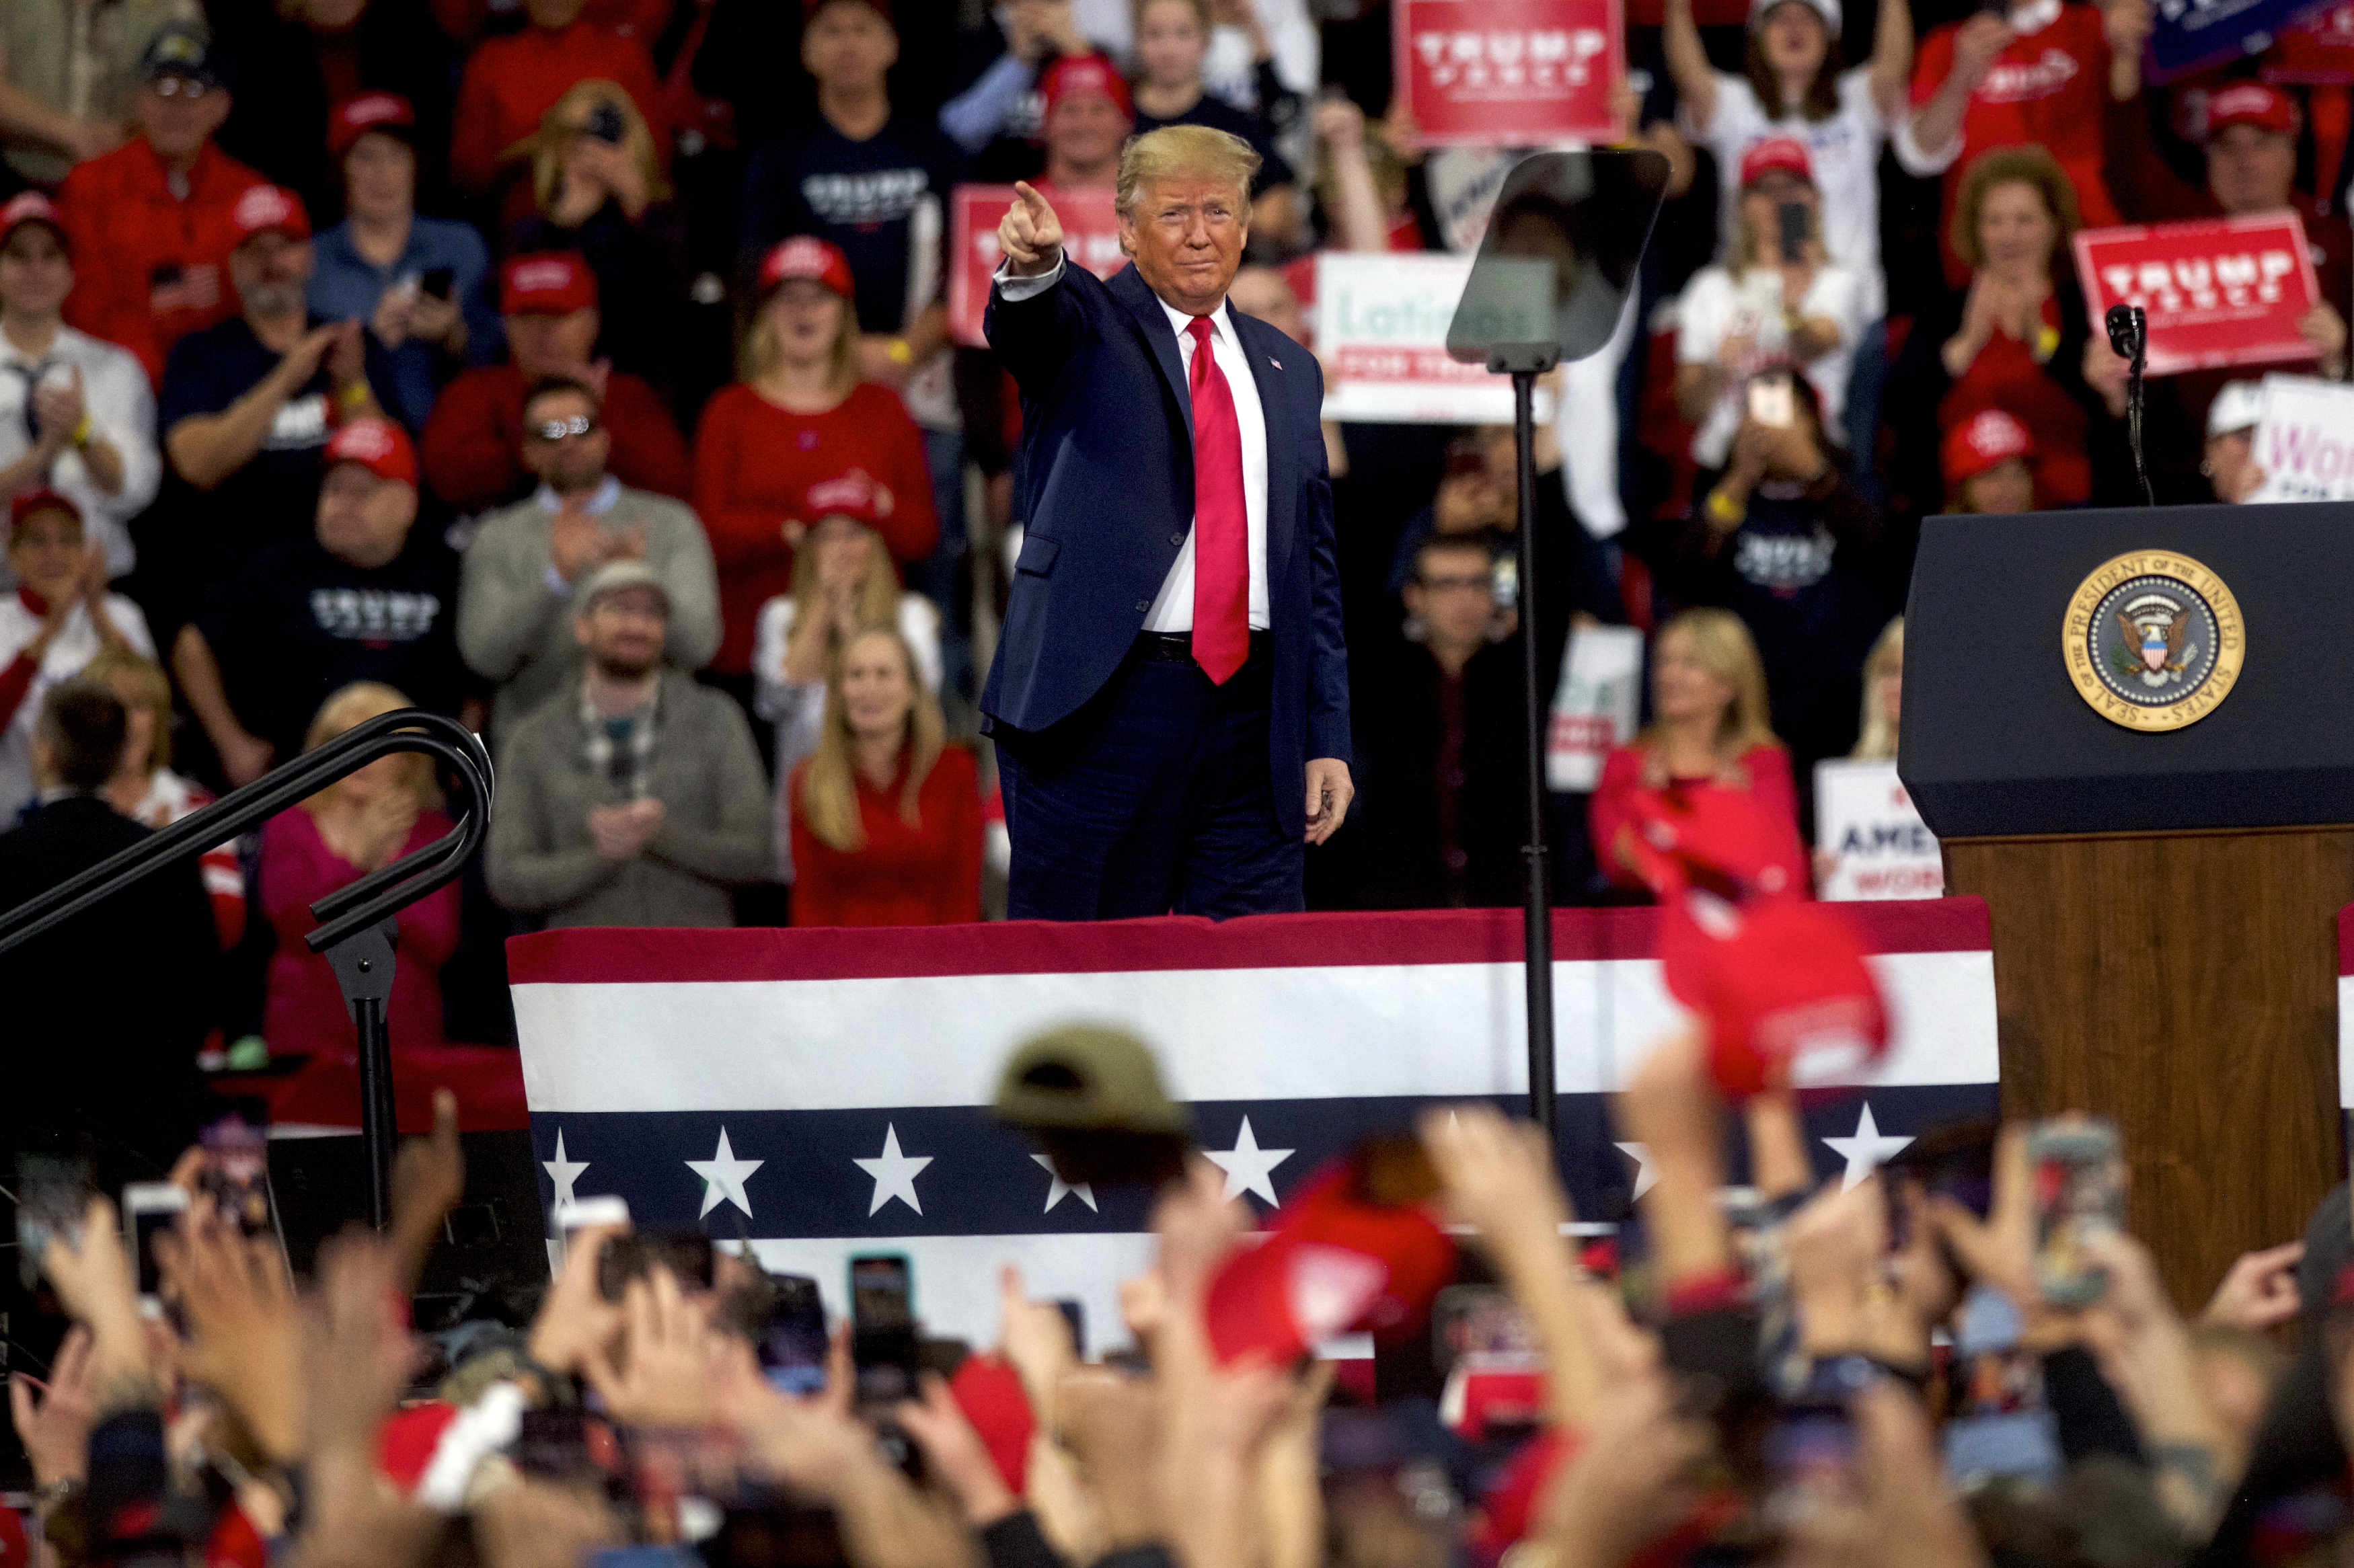 US President Donald Trump during the campaign rally in Hershey, Pennsylvania.